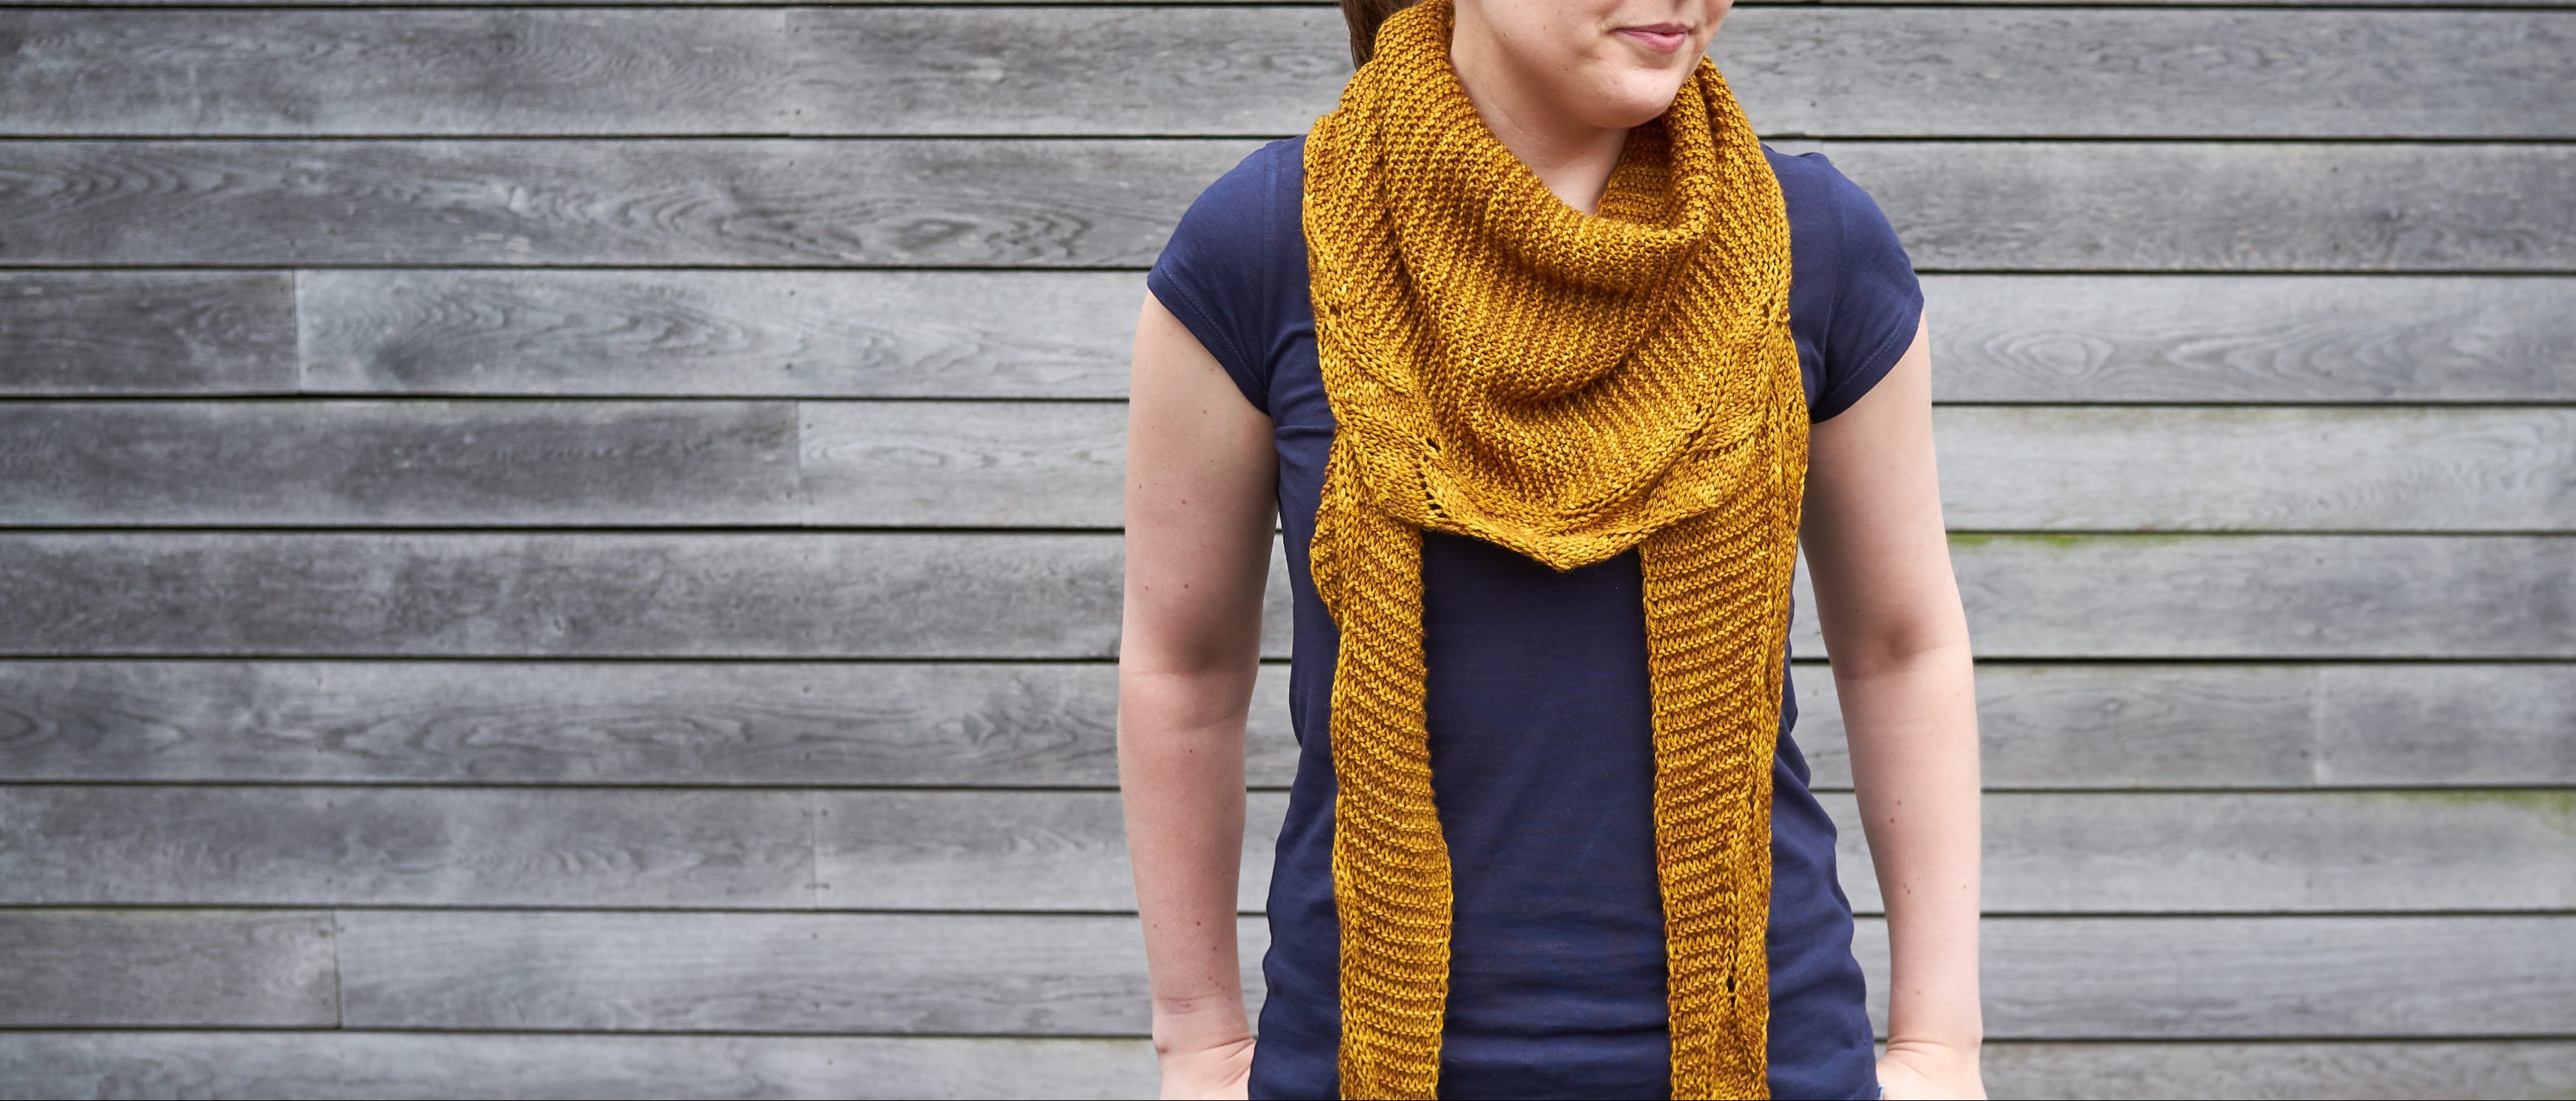 Curcuma Shawl knitting pattern | Shortrounds Knitwear